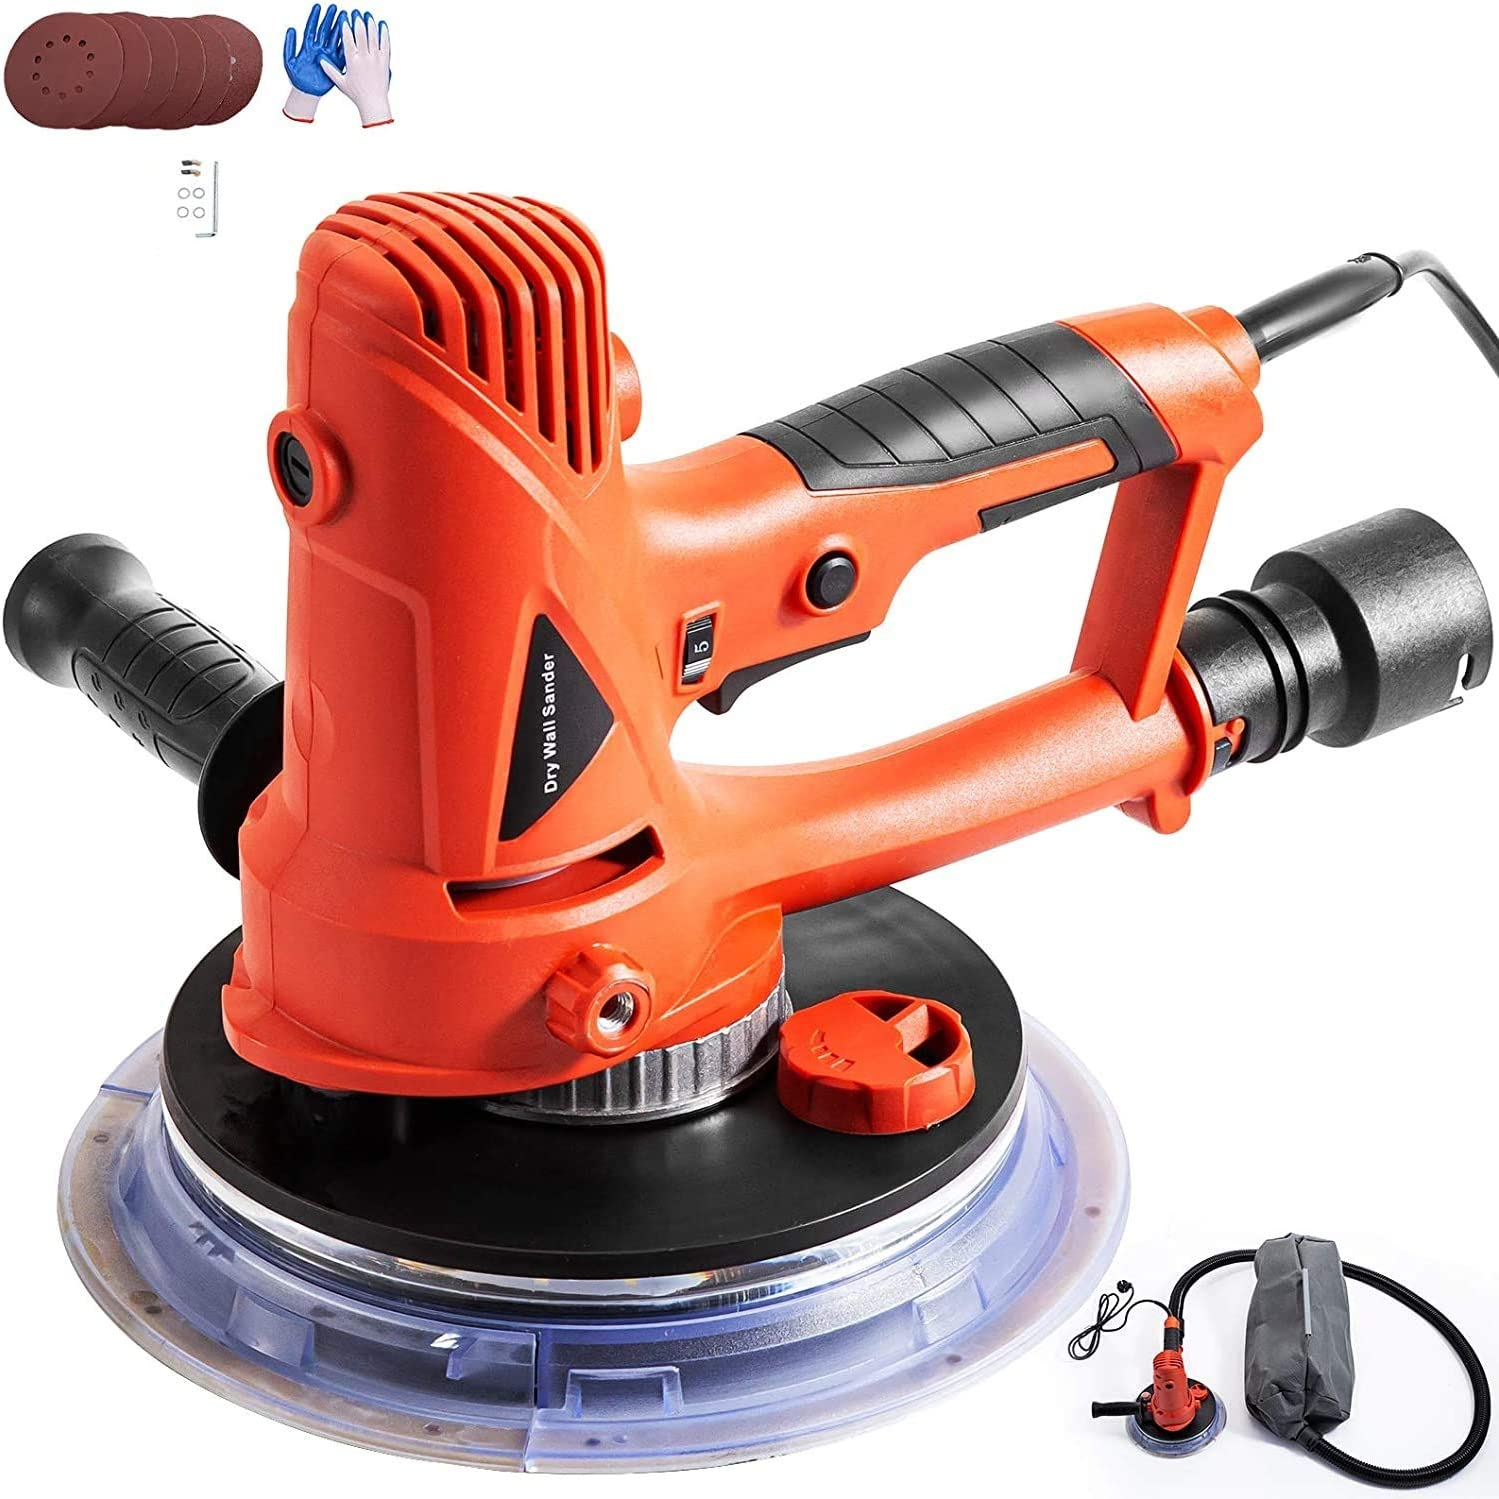 Electric Drywall Sander with Automatic Vacuum System and LED Light,Variable Speed 1200-2500RPM,Handheld Drywall Sander with a Carry Vacuum Bag and 6 pcs Sanding Discs Mophorn Drywall Sander 710W